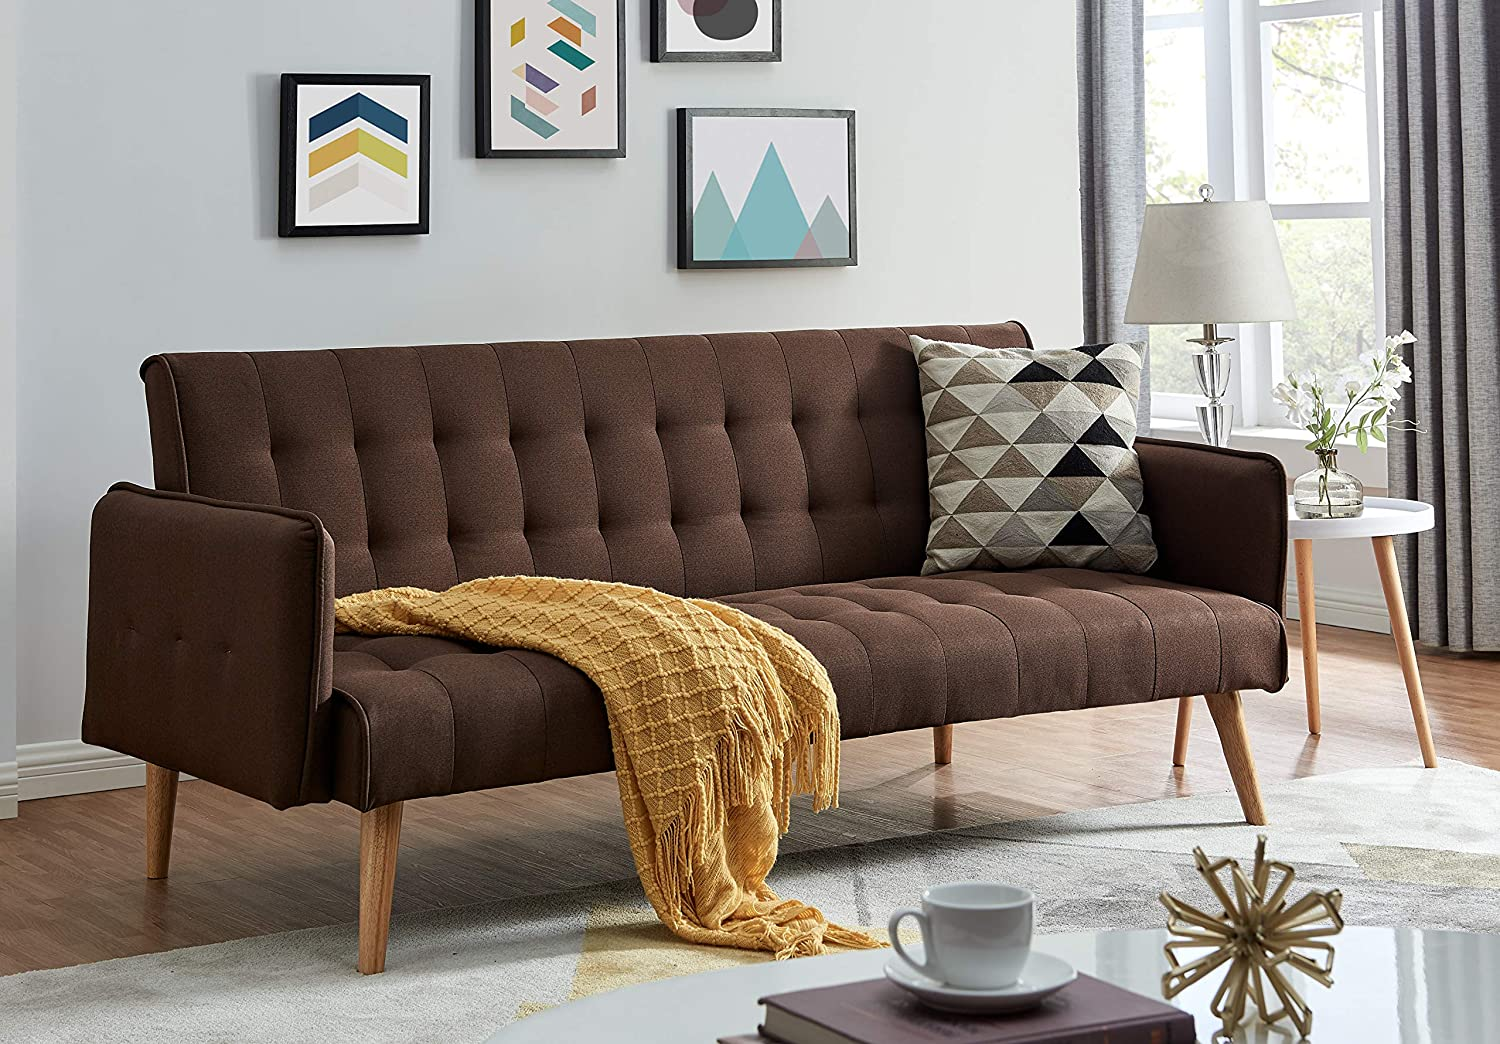 Scandi Modern Chocolate 3 Seater Sofa